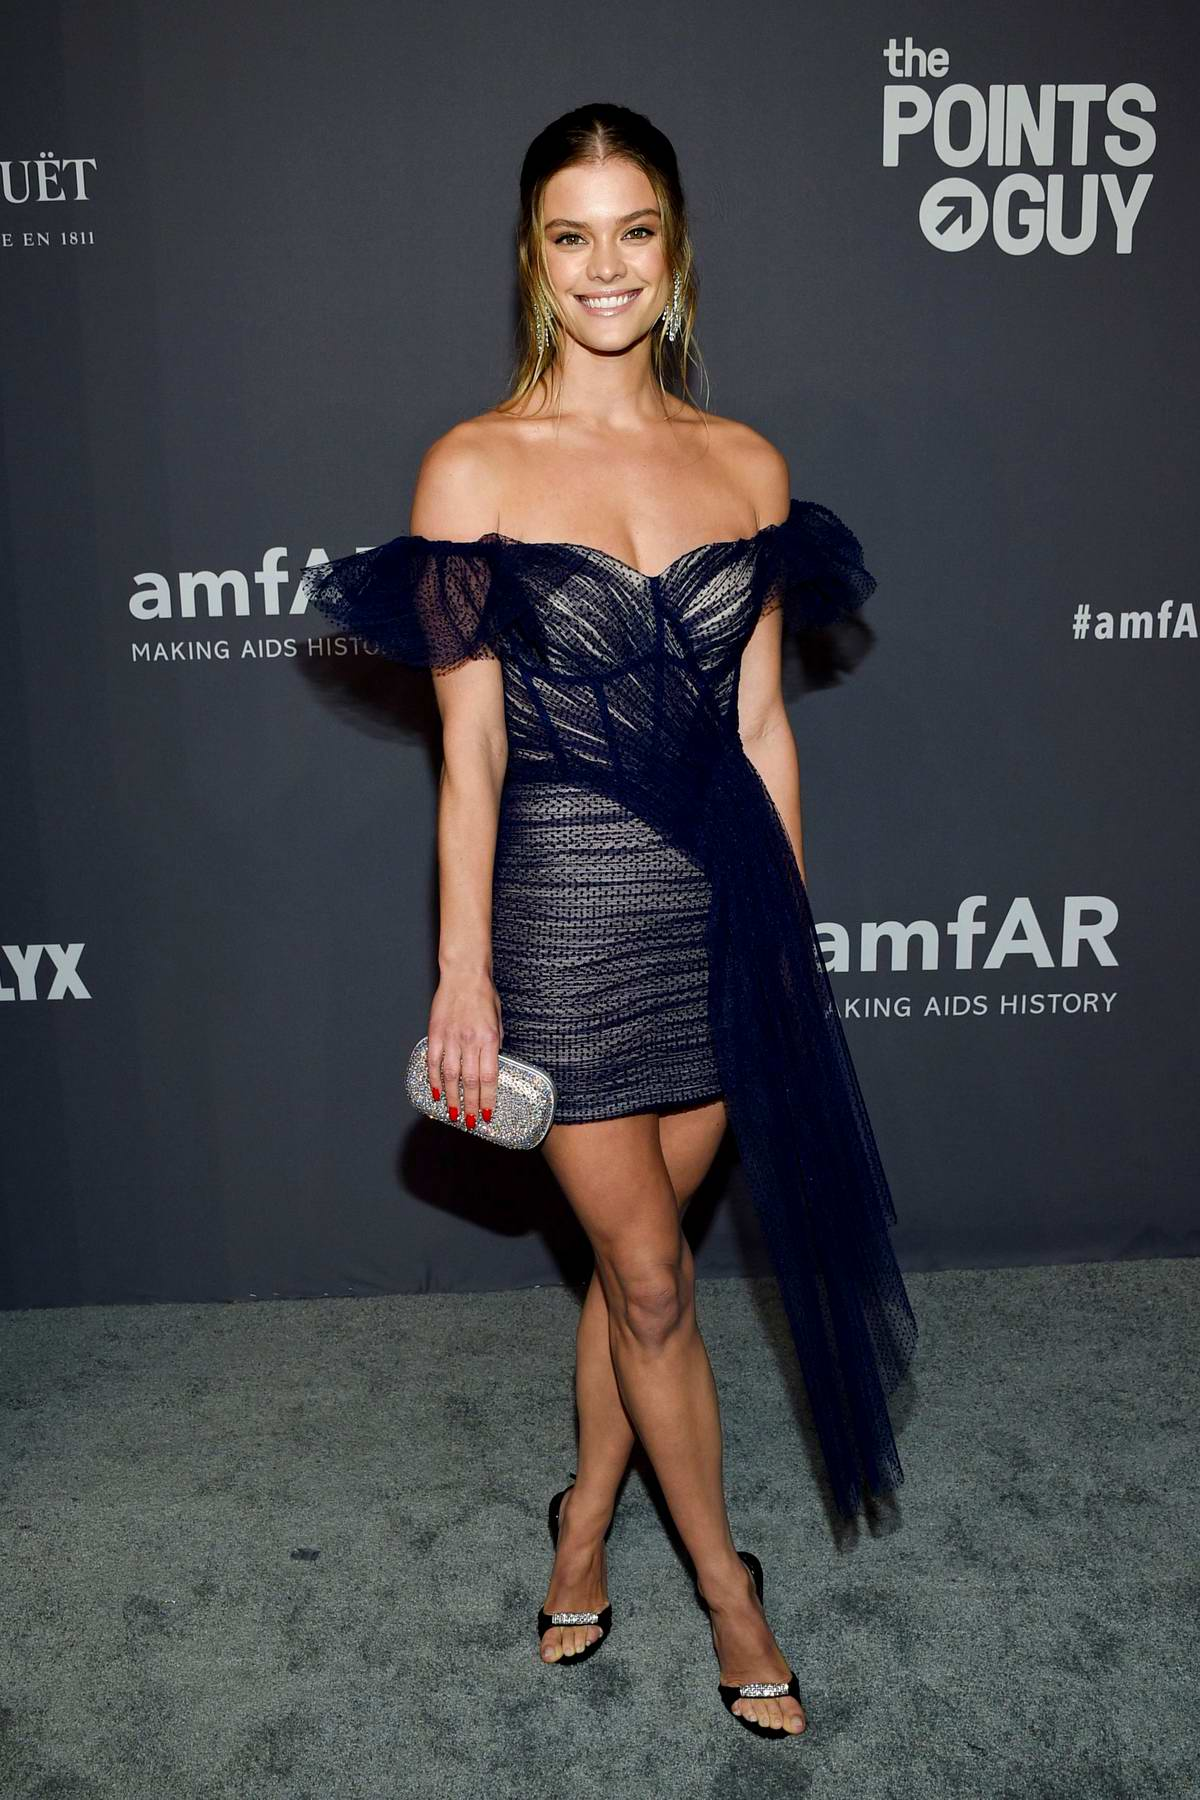 Nina Agdal attends amfAR New York Gala 2019 at Cipriani Wall Street in New York City